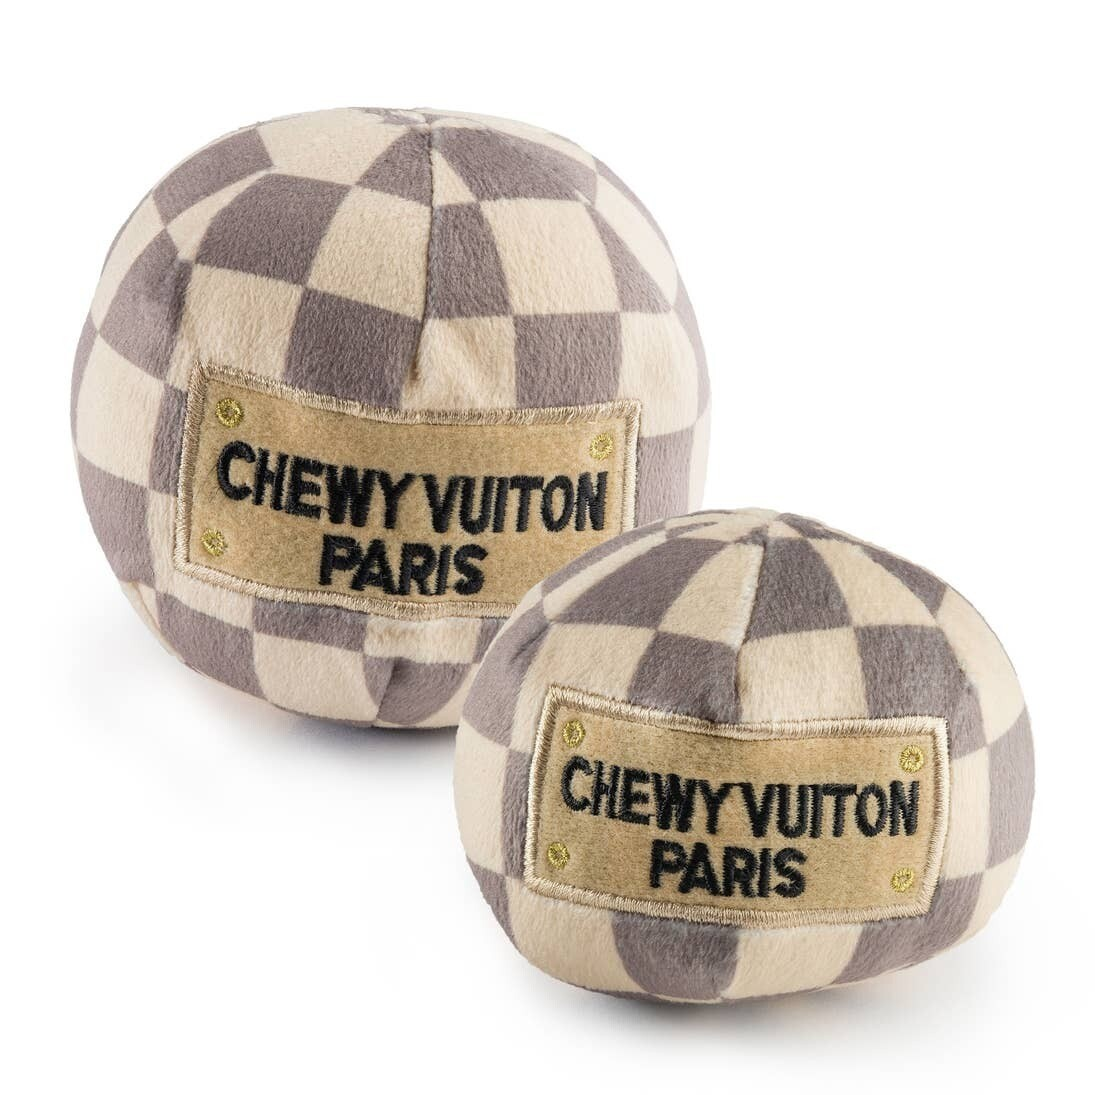 Chewy Vuitton - Large